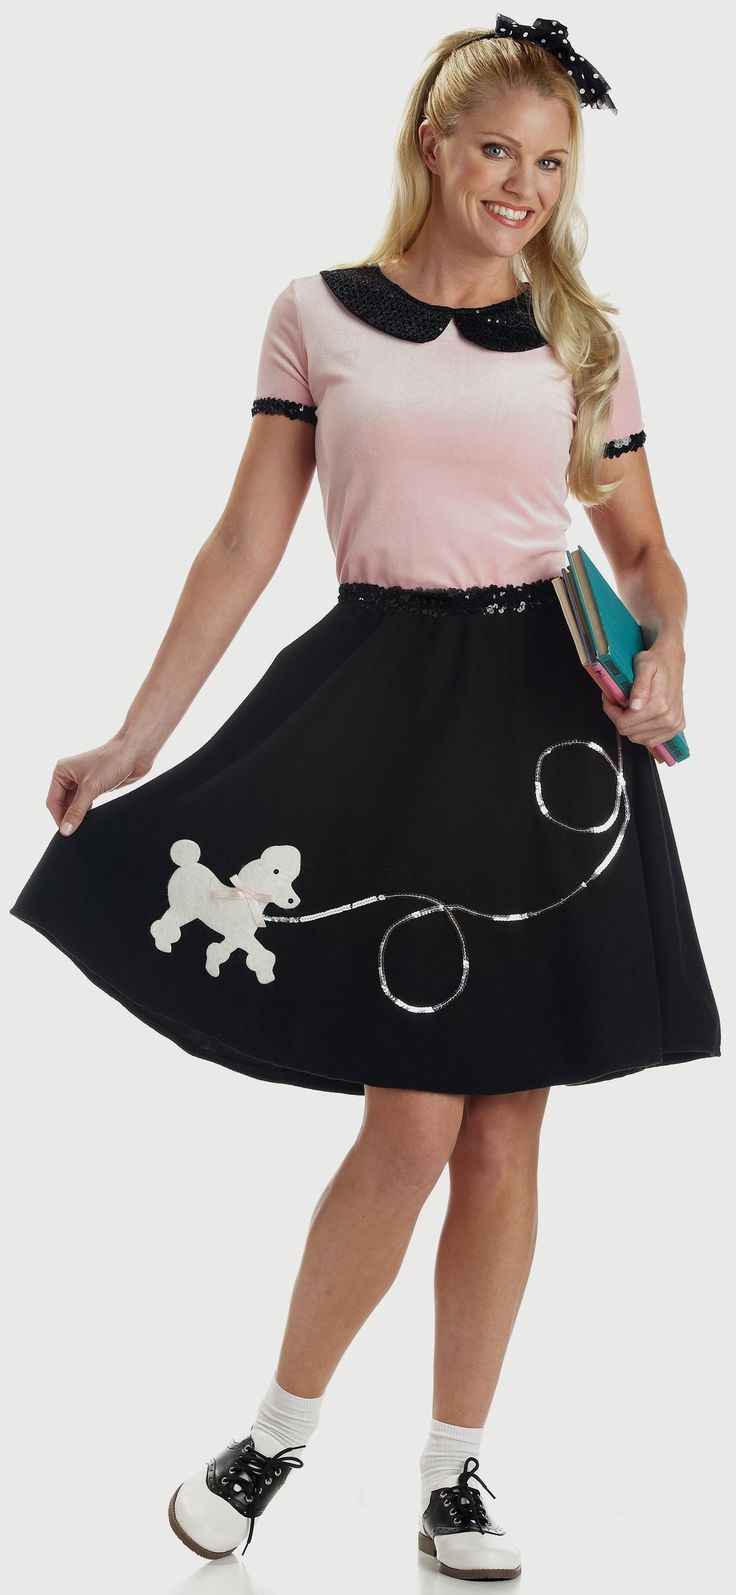 How To Make A Poodle Skirt That Became Trend In The 50s